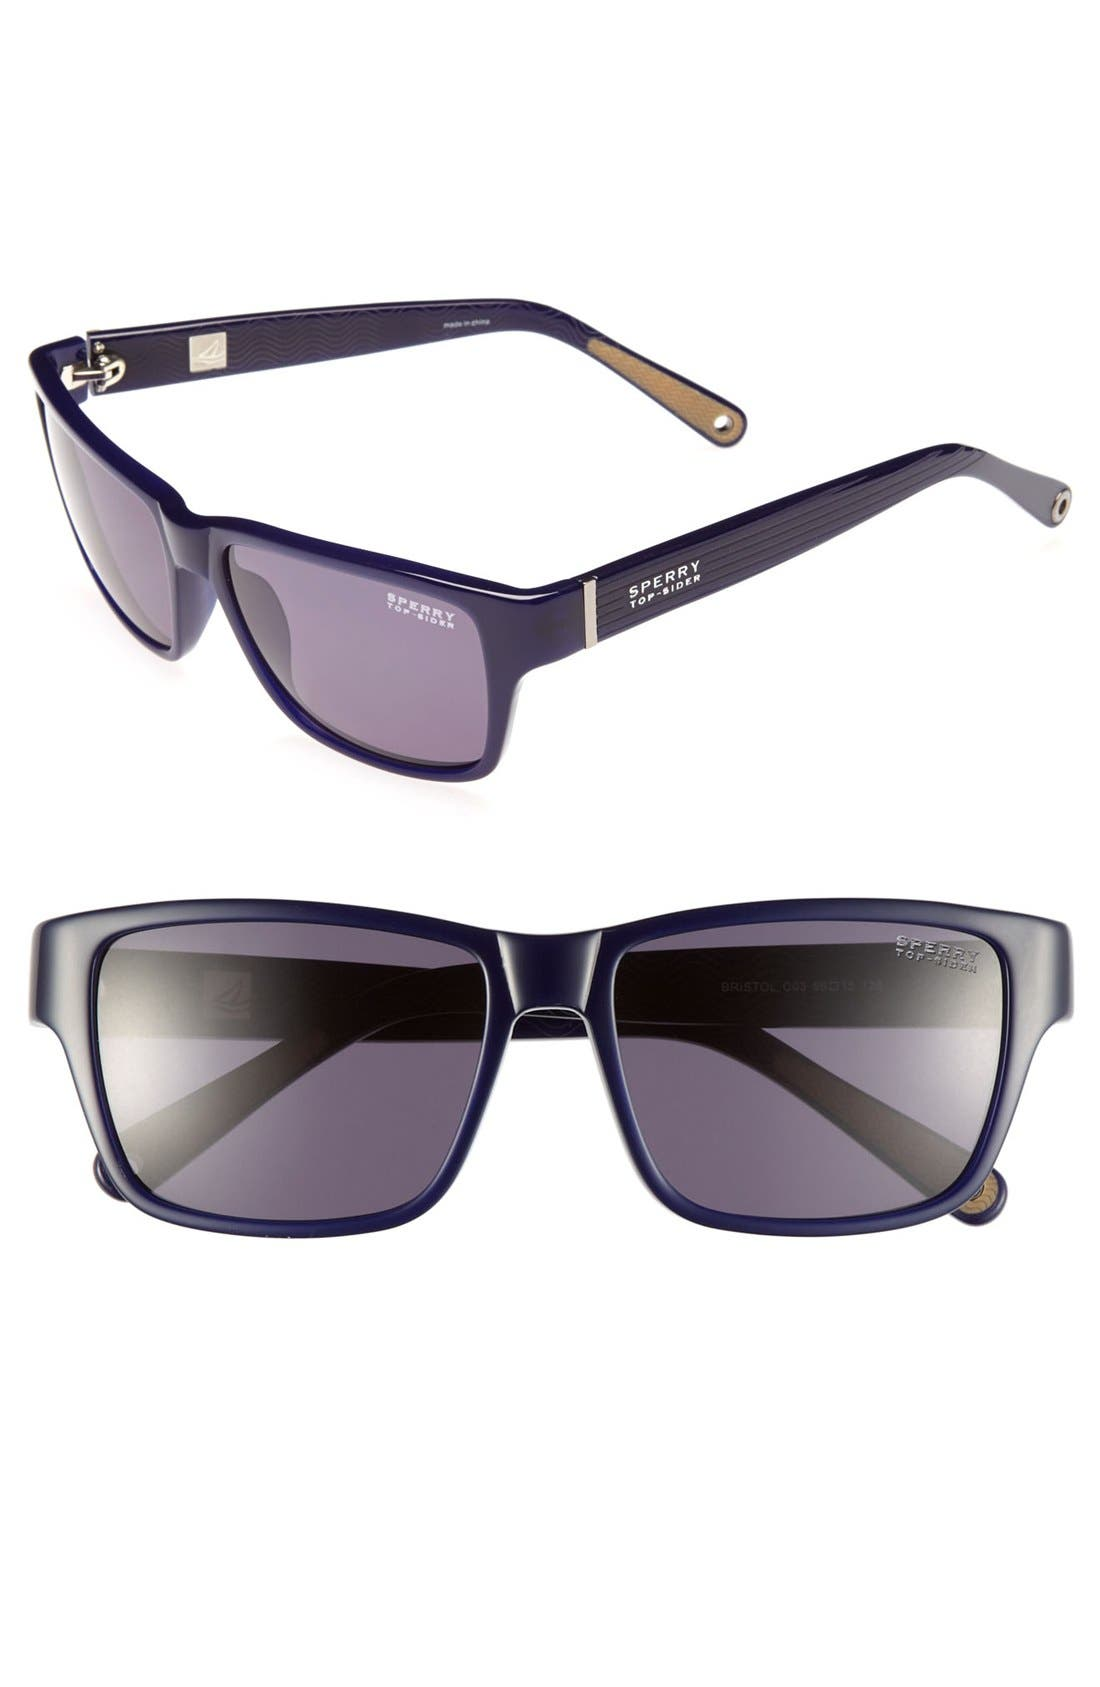 Main Image - Sperry Top-Sider® 'Bristol' 56mm Sunglasses (Online Only)